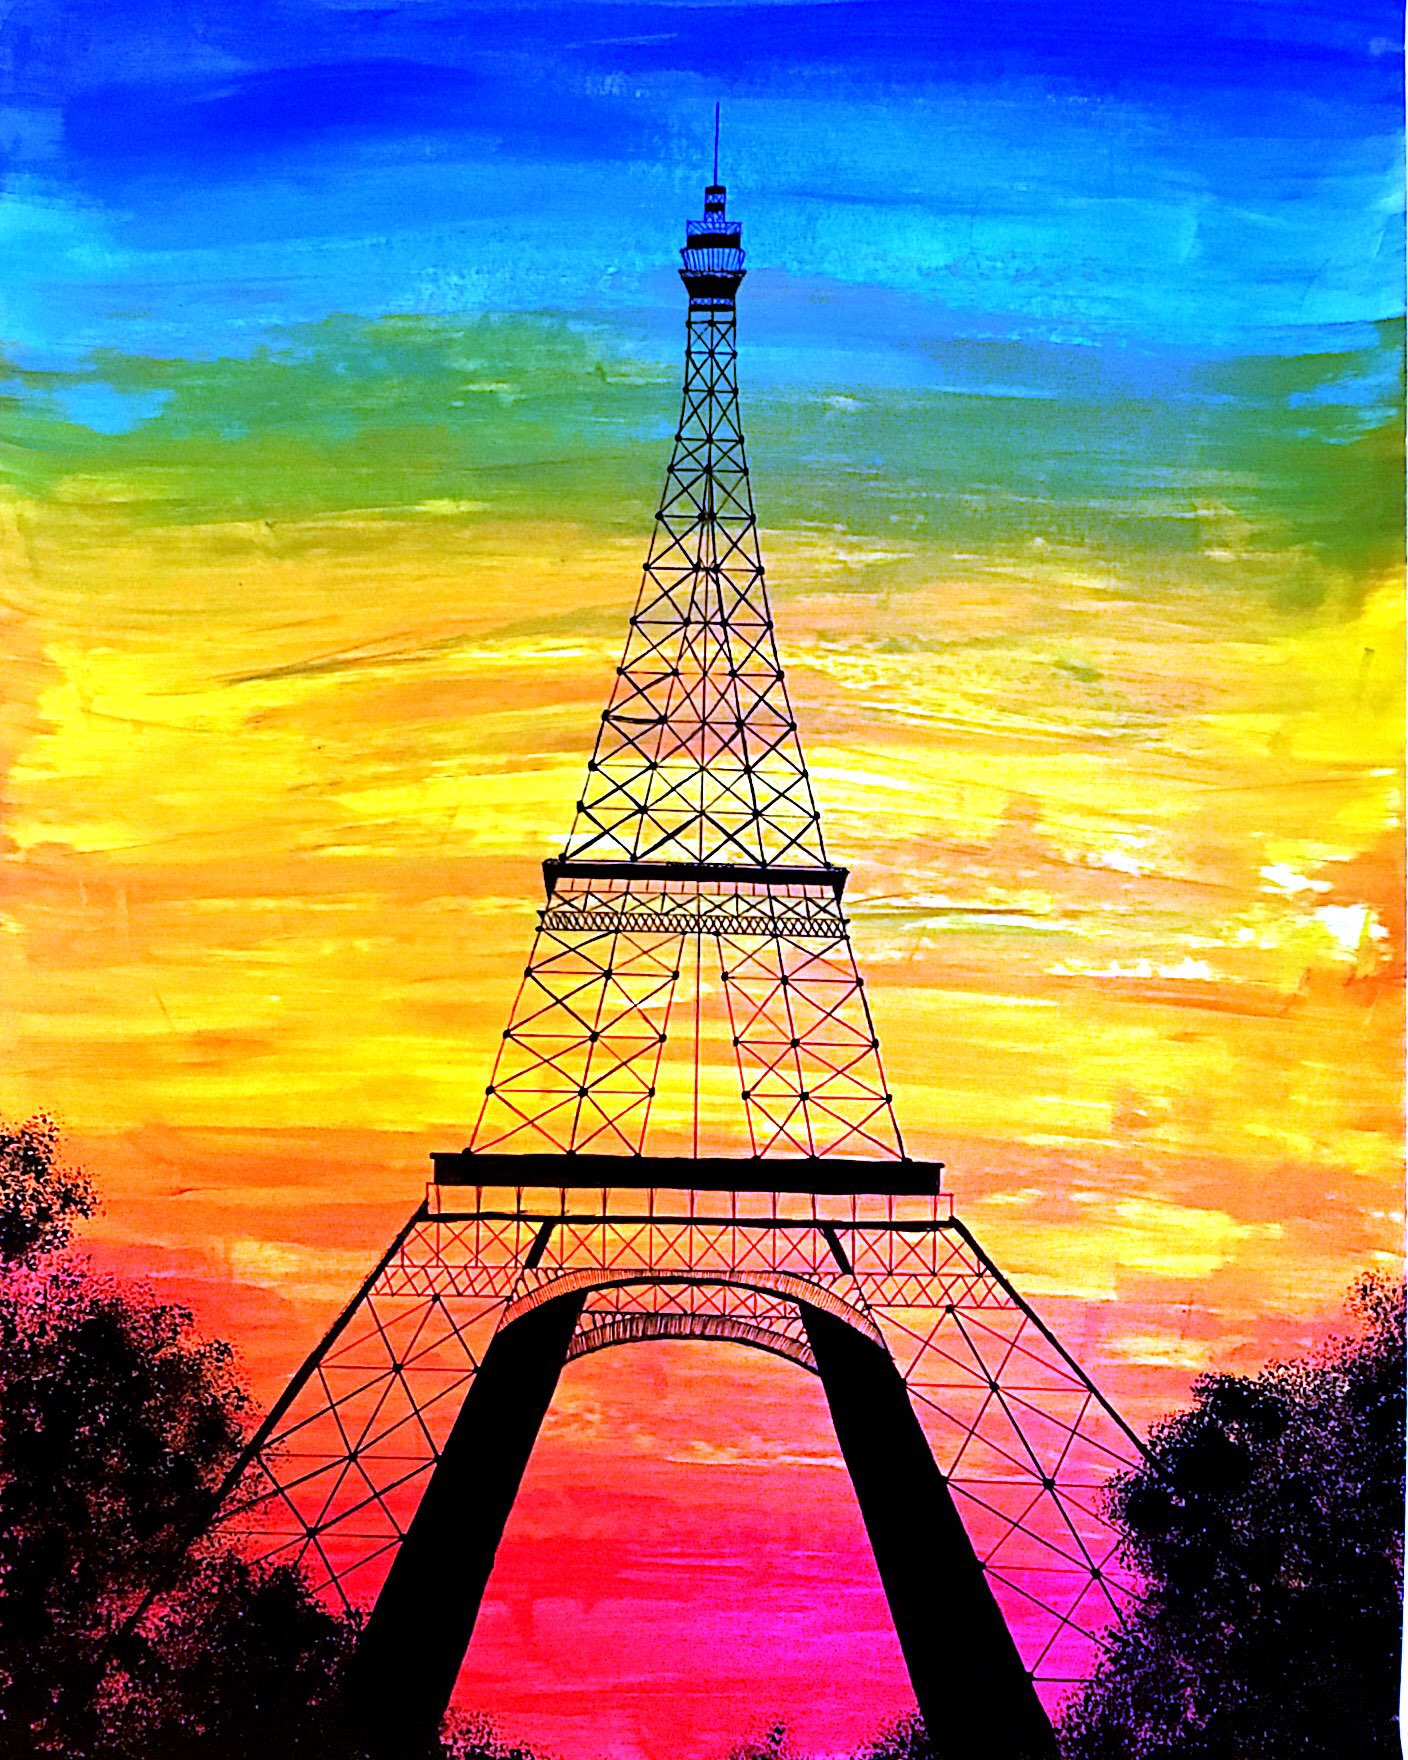 A painting of the most famous landmark of my favorite country. Acrylic paint on paper. 2018.